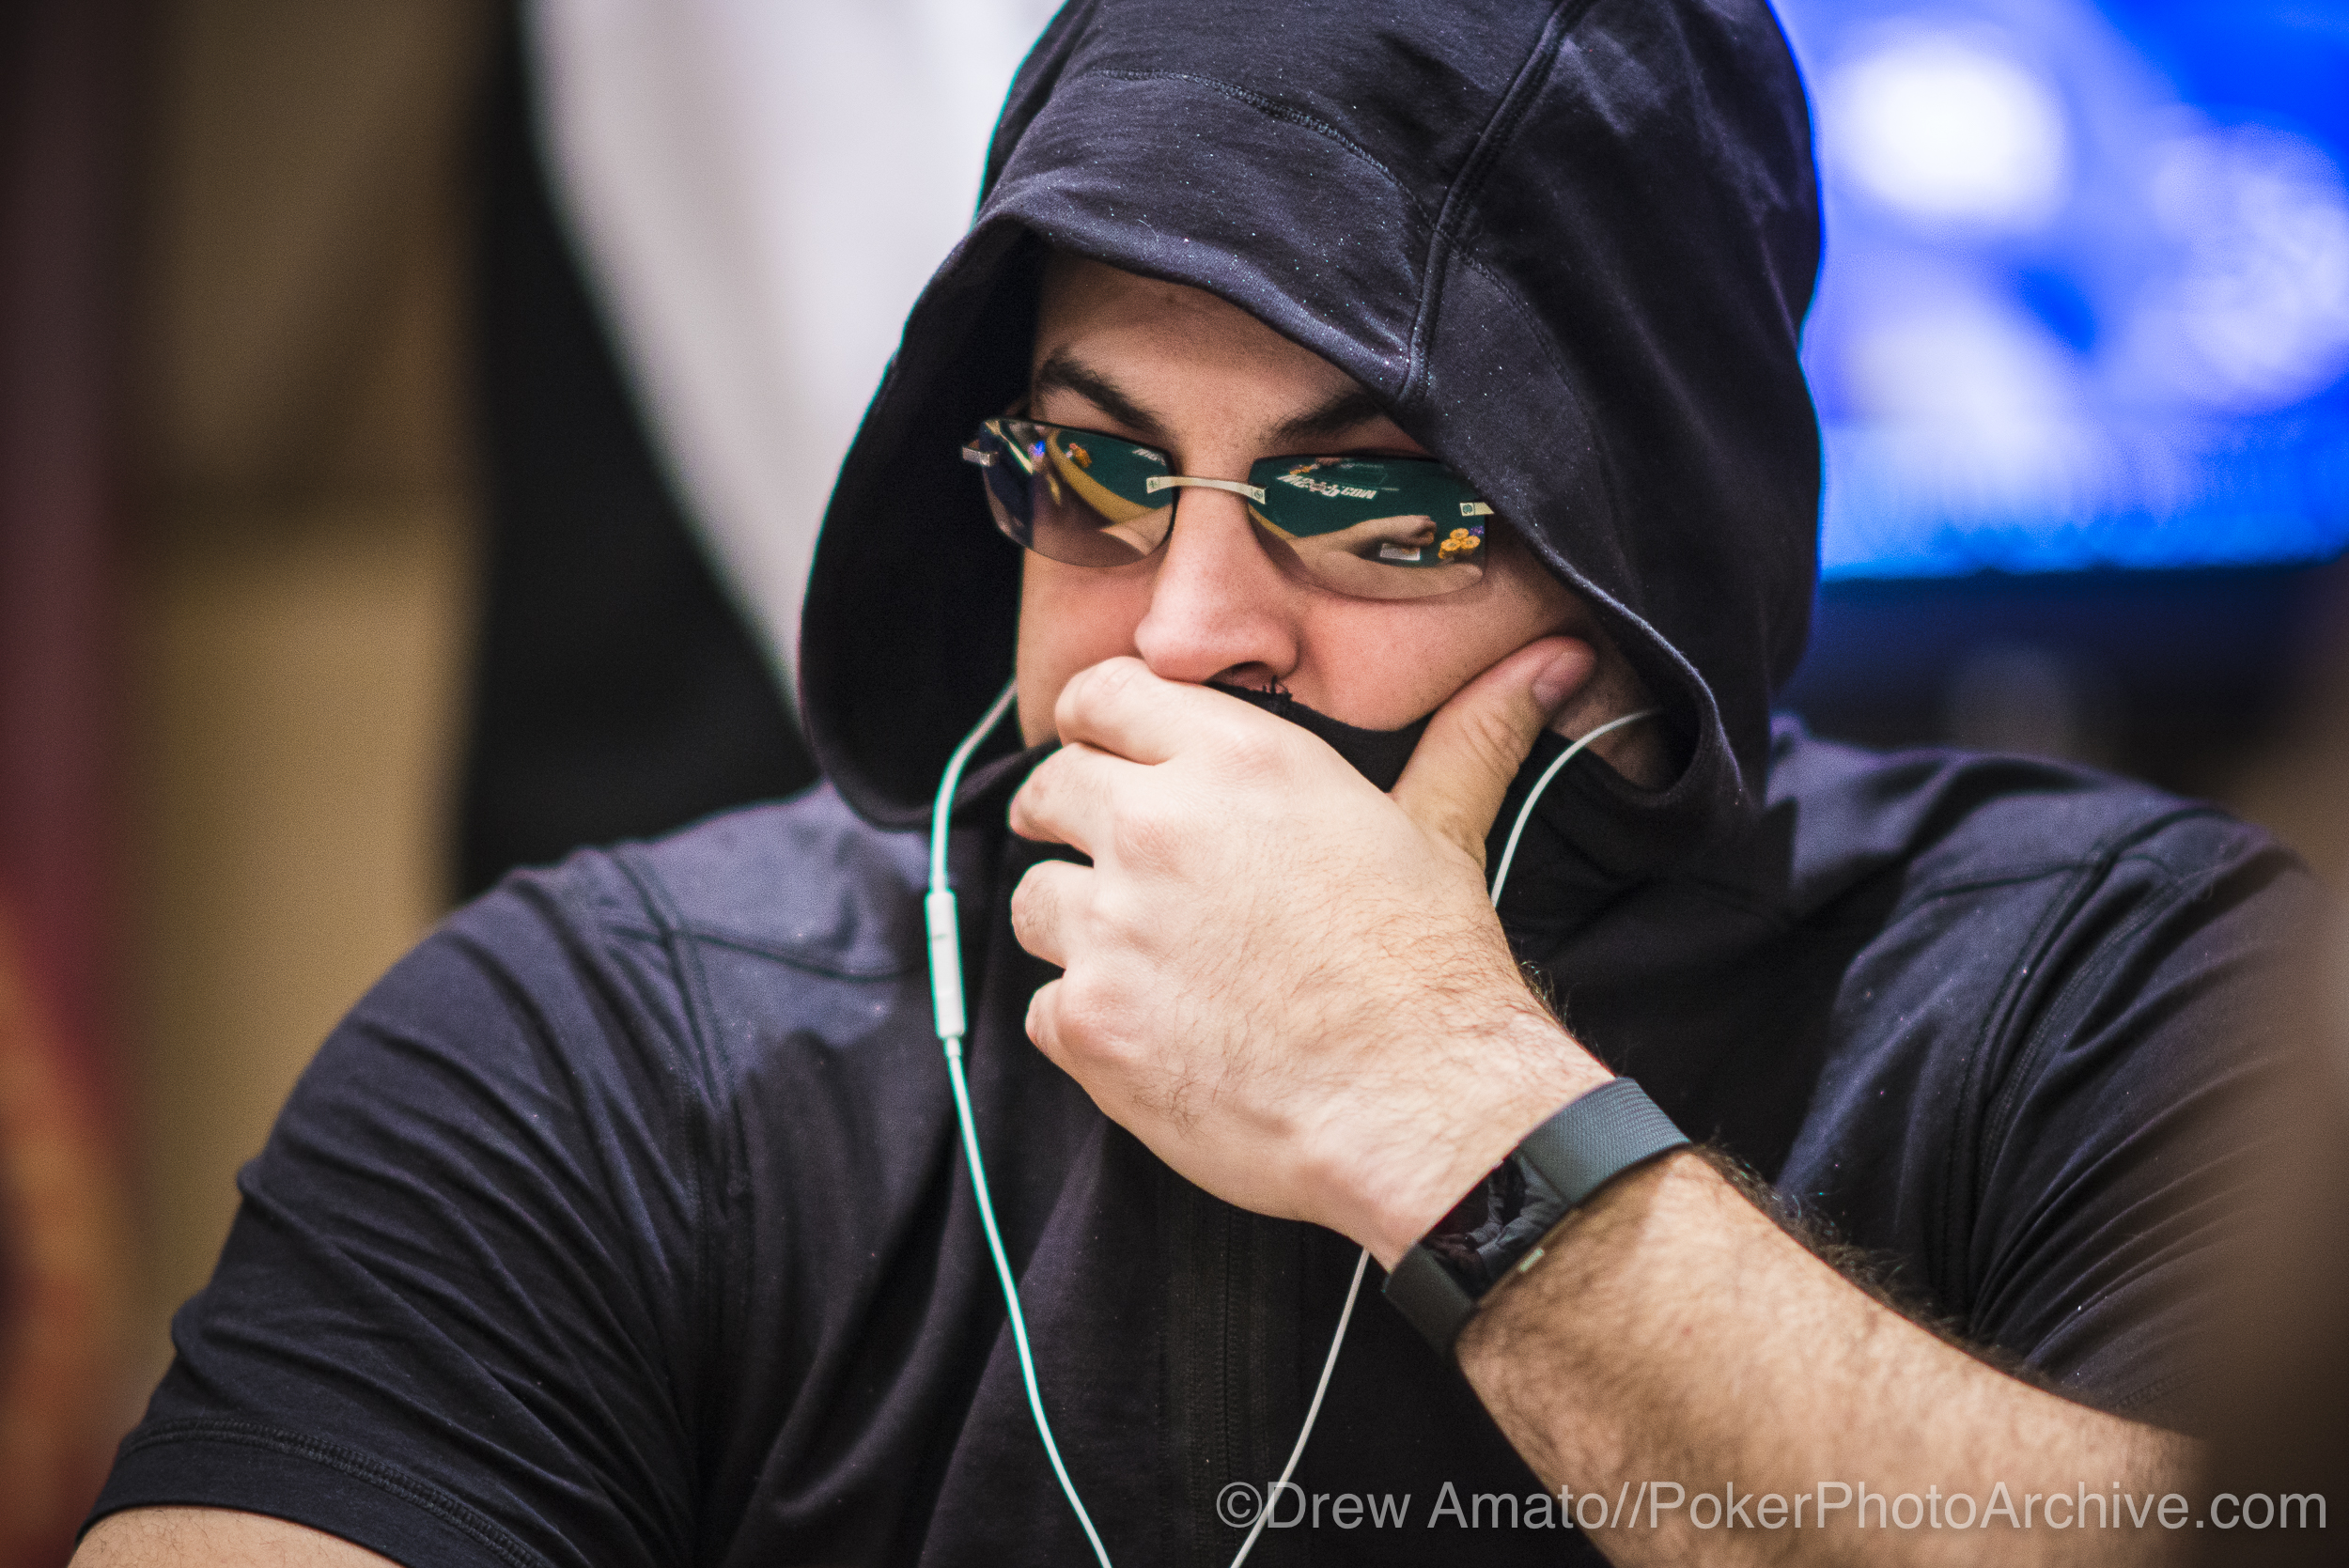 David Paredes_2017 WSOP_EV59_Day 1_Amato_DA67239.jpg